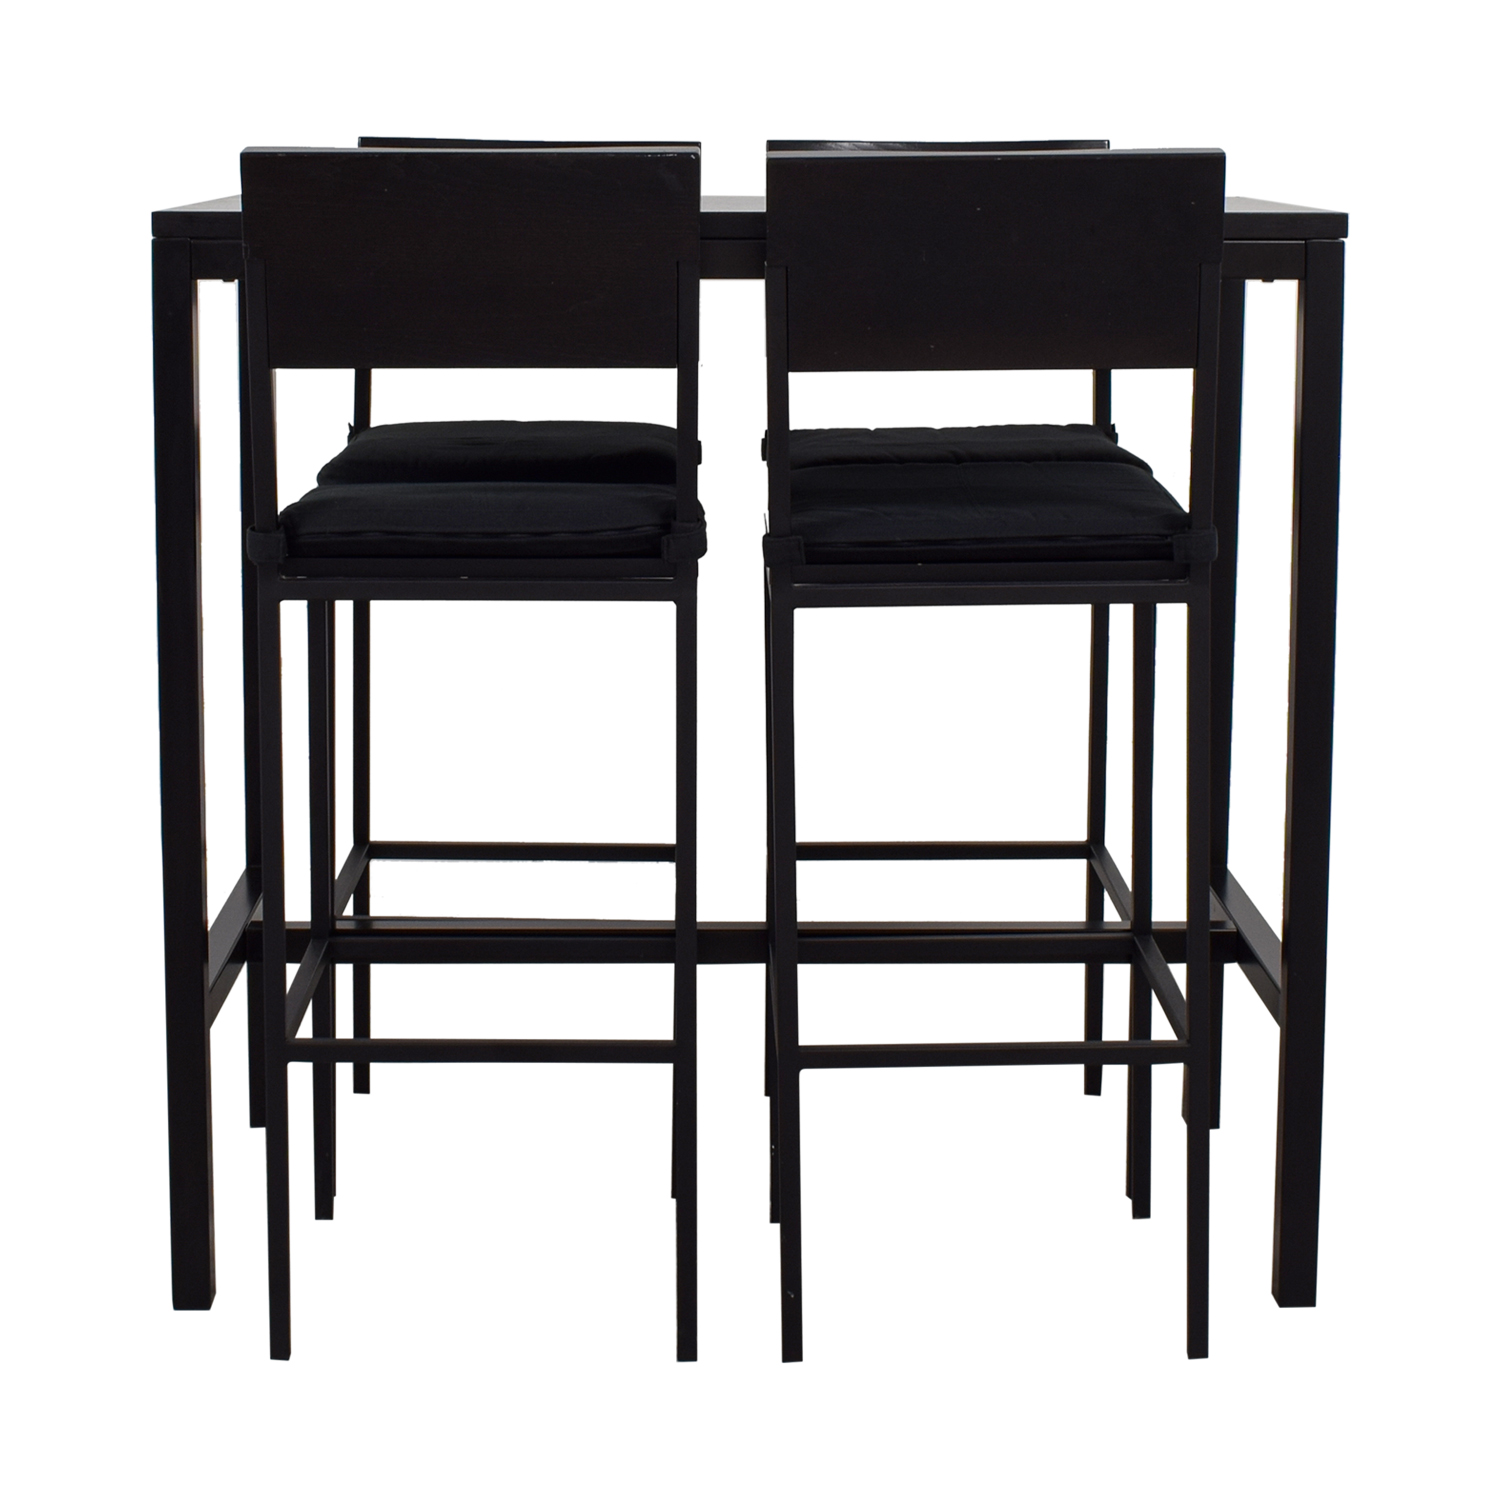 buy Crate & Barrel Black Tall Kitchen Dining Set Crate & Barrel Dining Sets